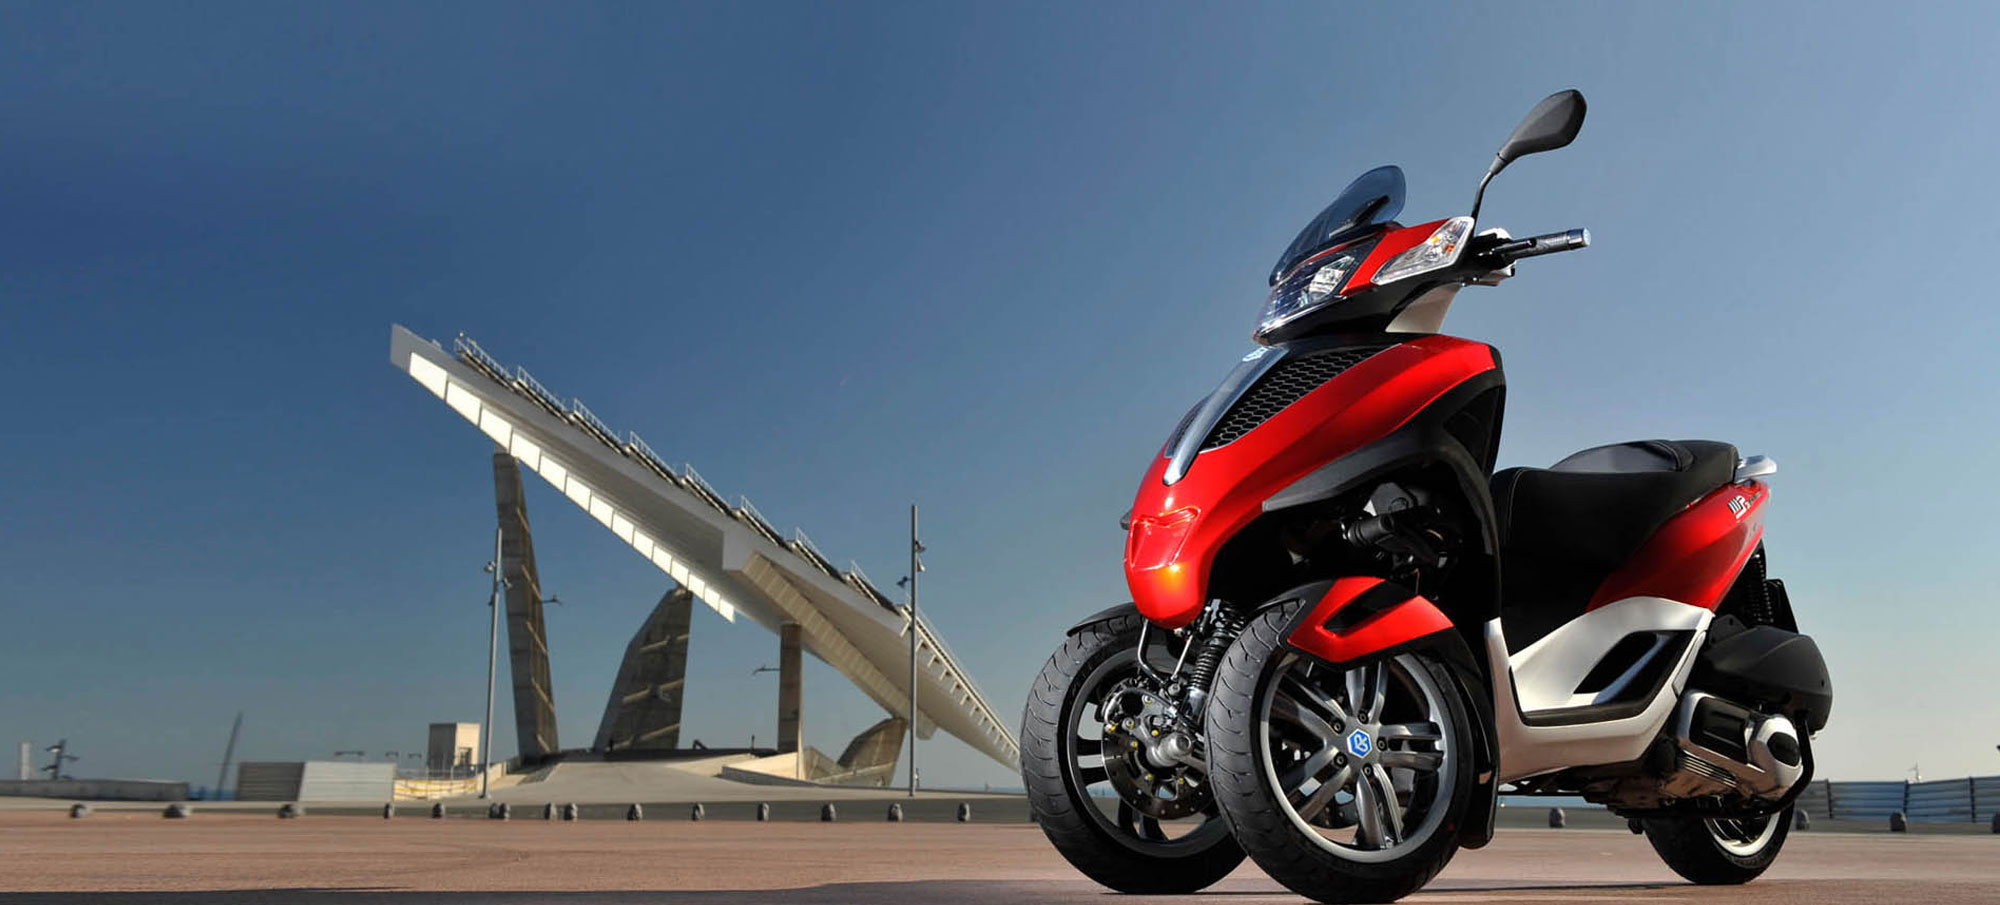 piaggio-beverly-mp3-yourban-background